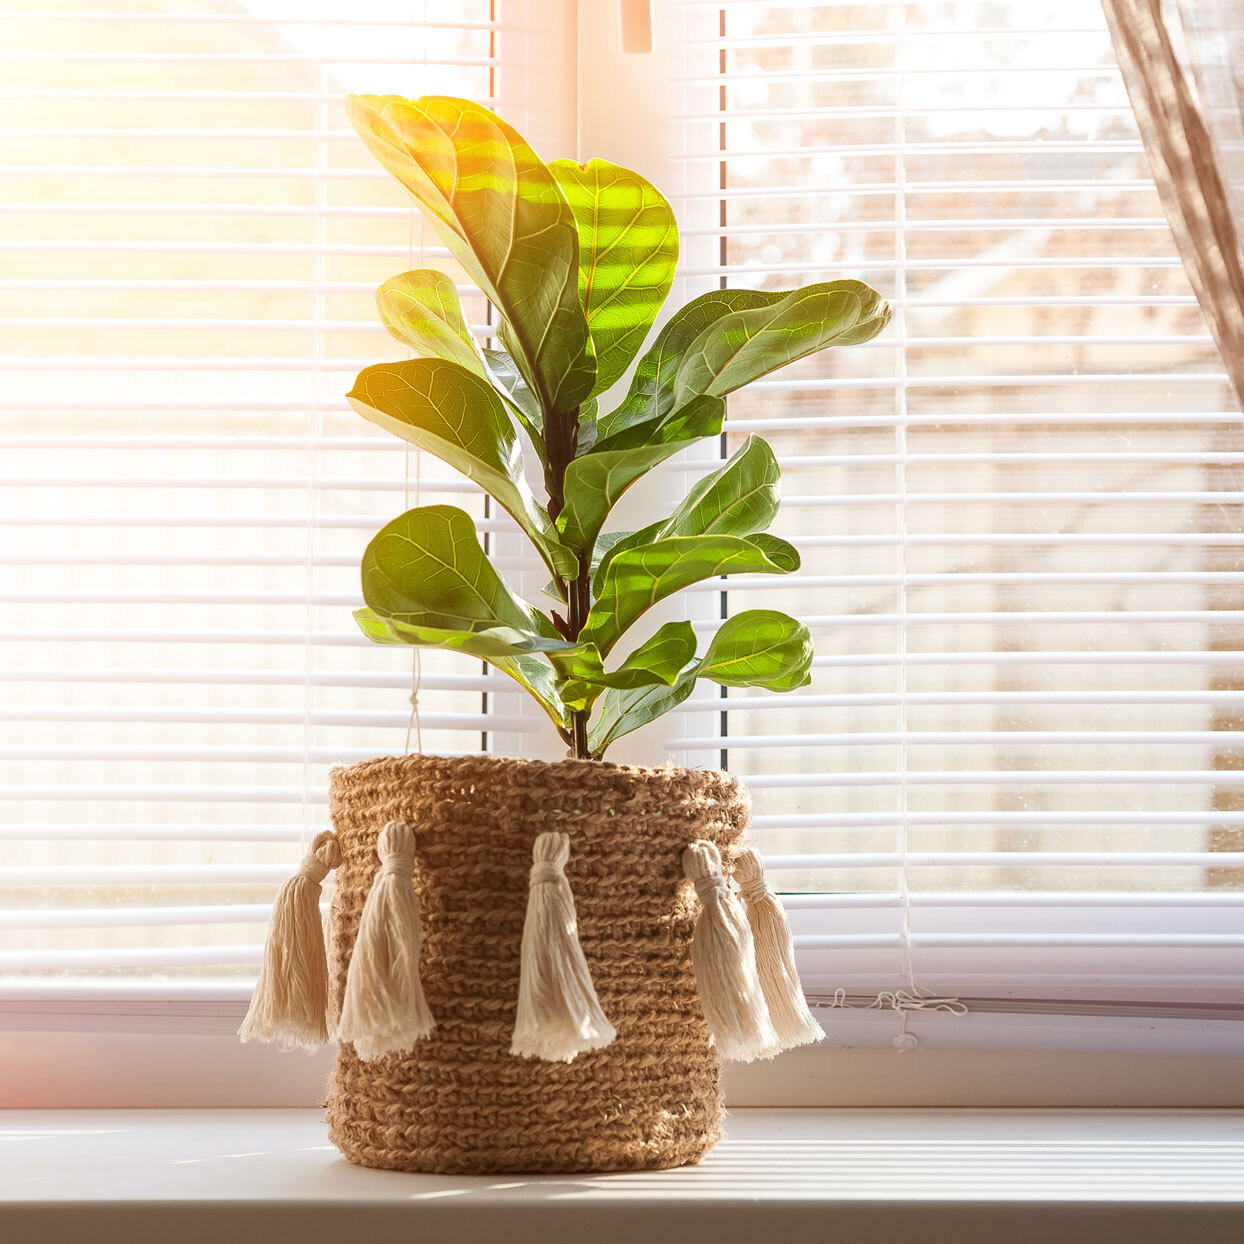 This Is the One Tool You're Missing to Take Care of Your Plants